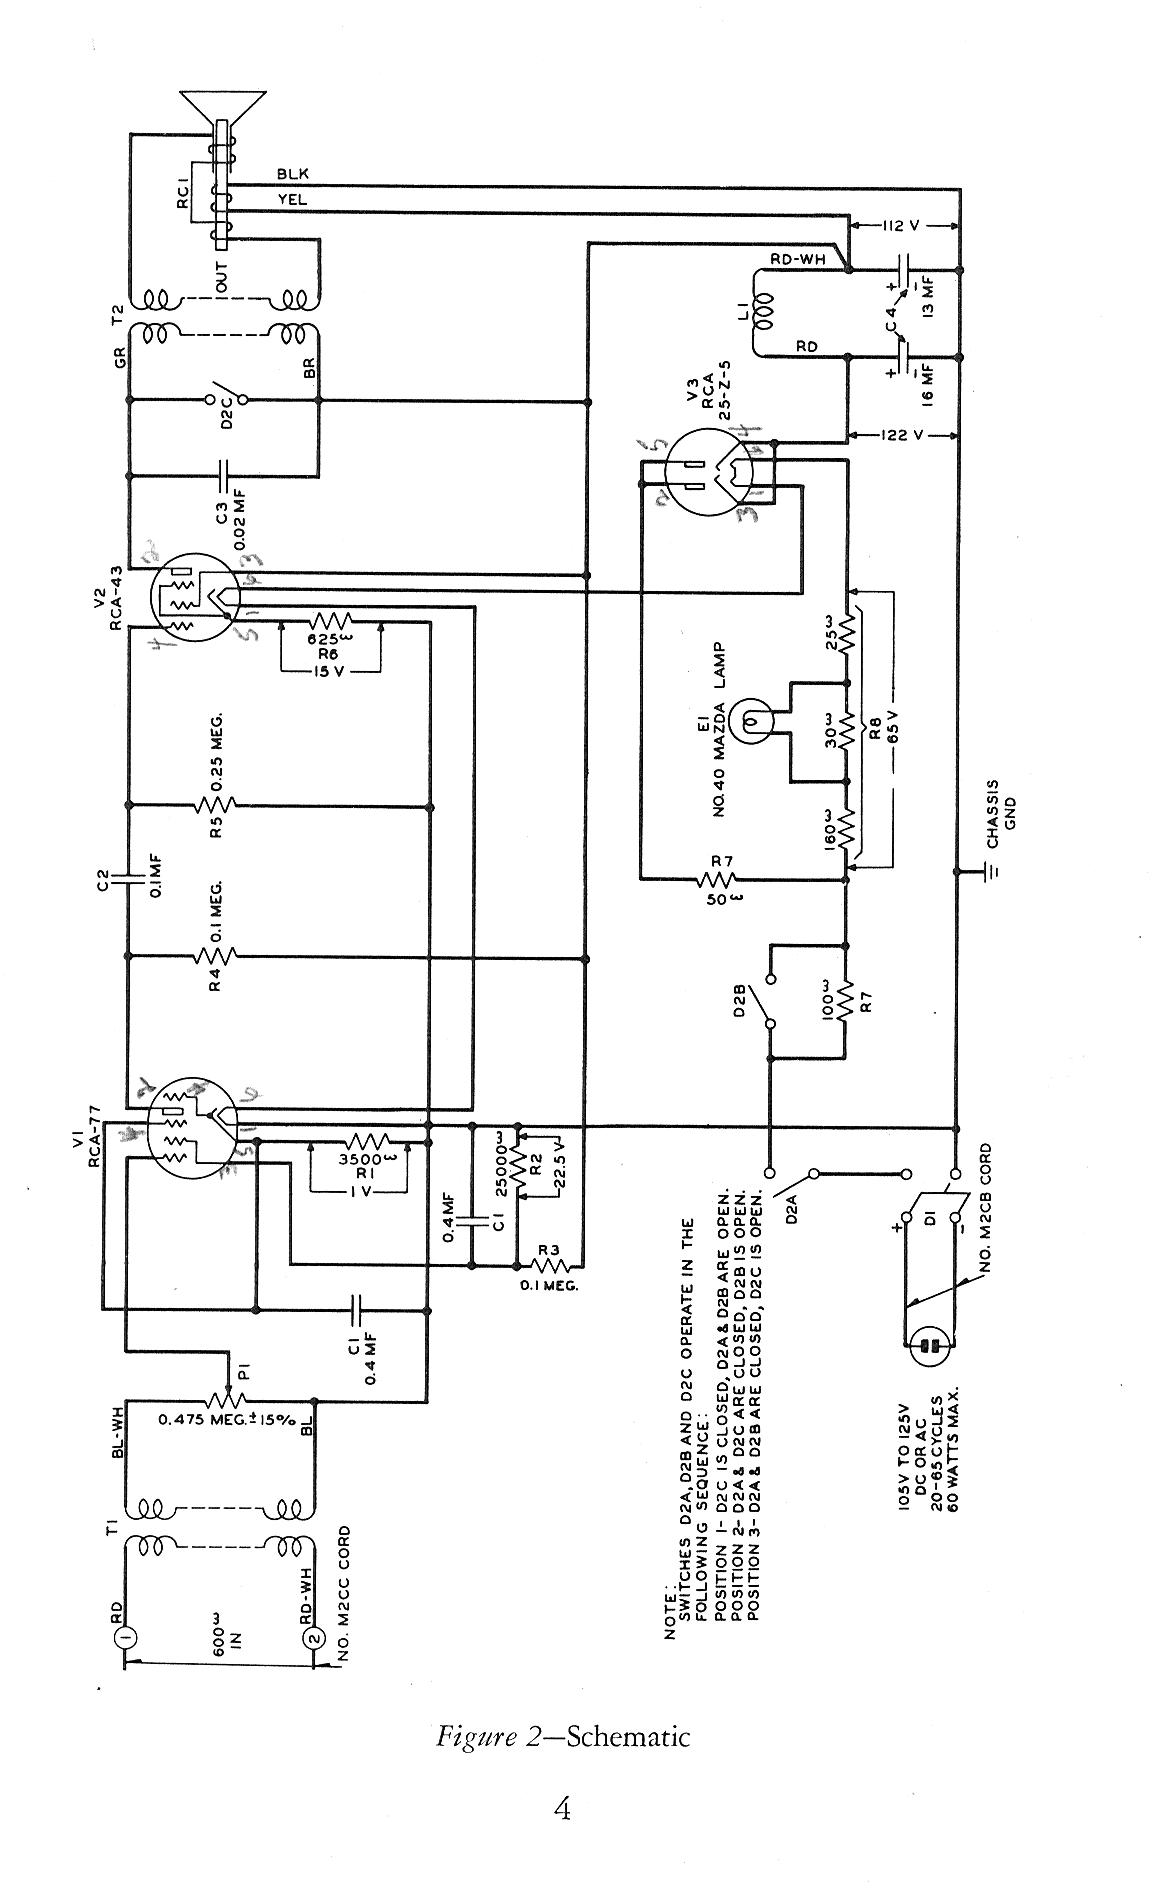 [WRG-5624] Wire Diagram For A 50 Amp 120 Volt Rv Circuit